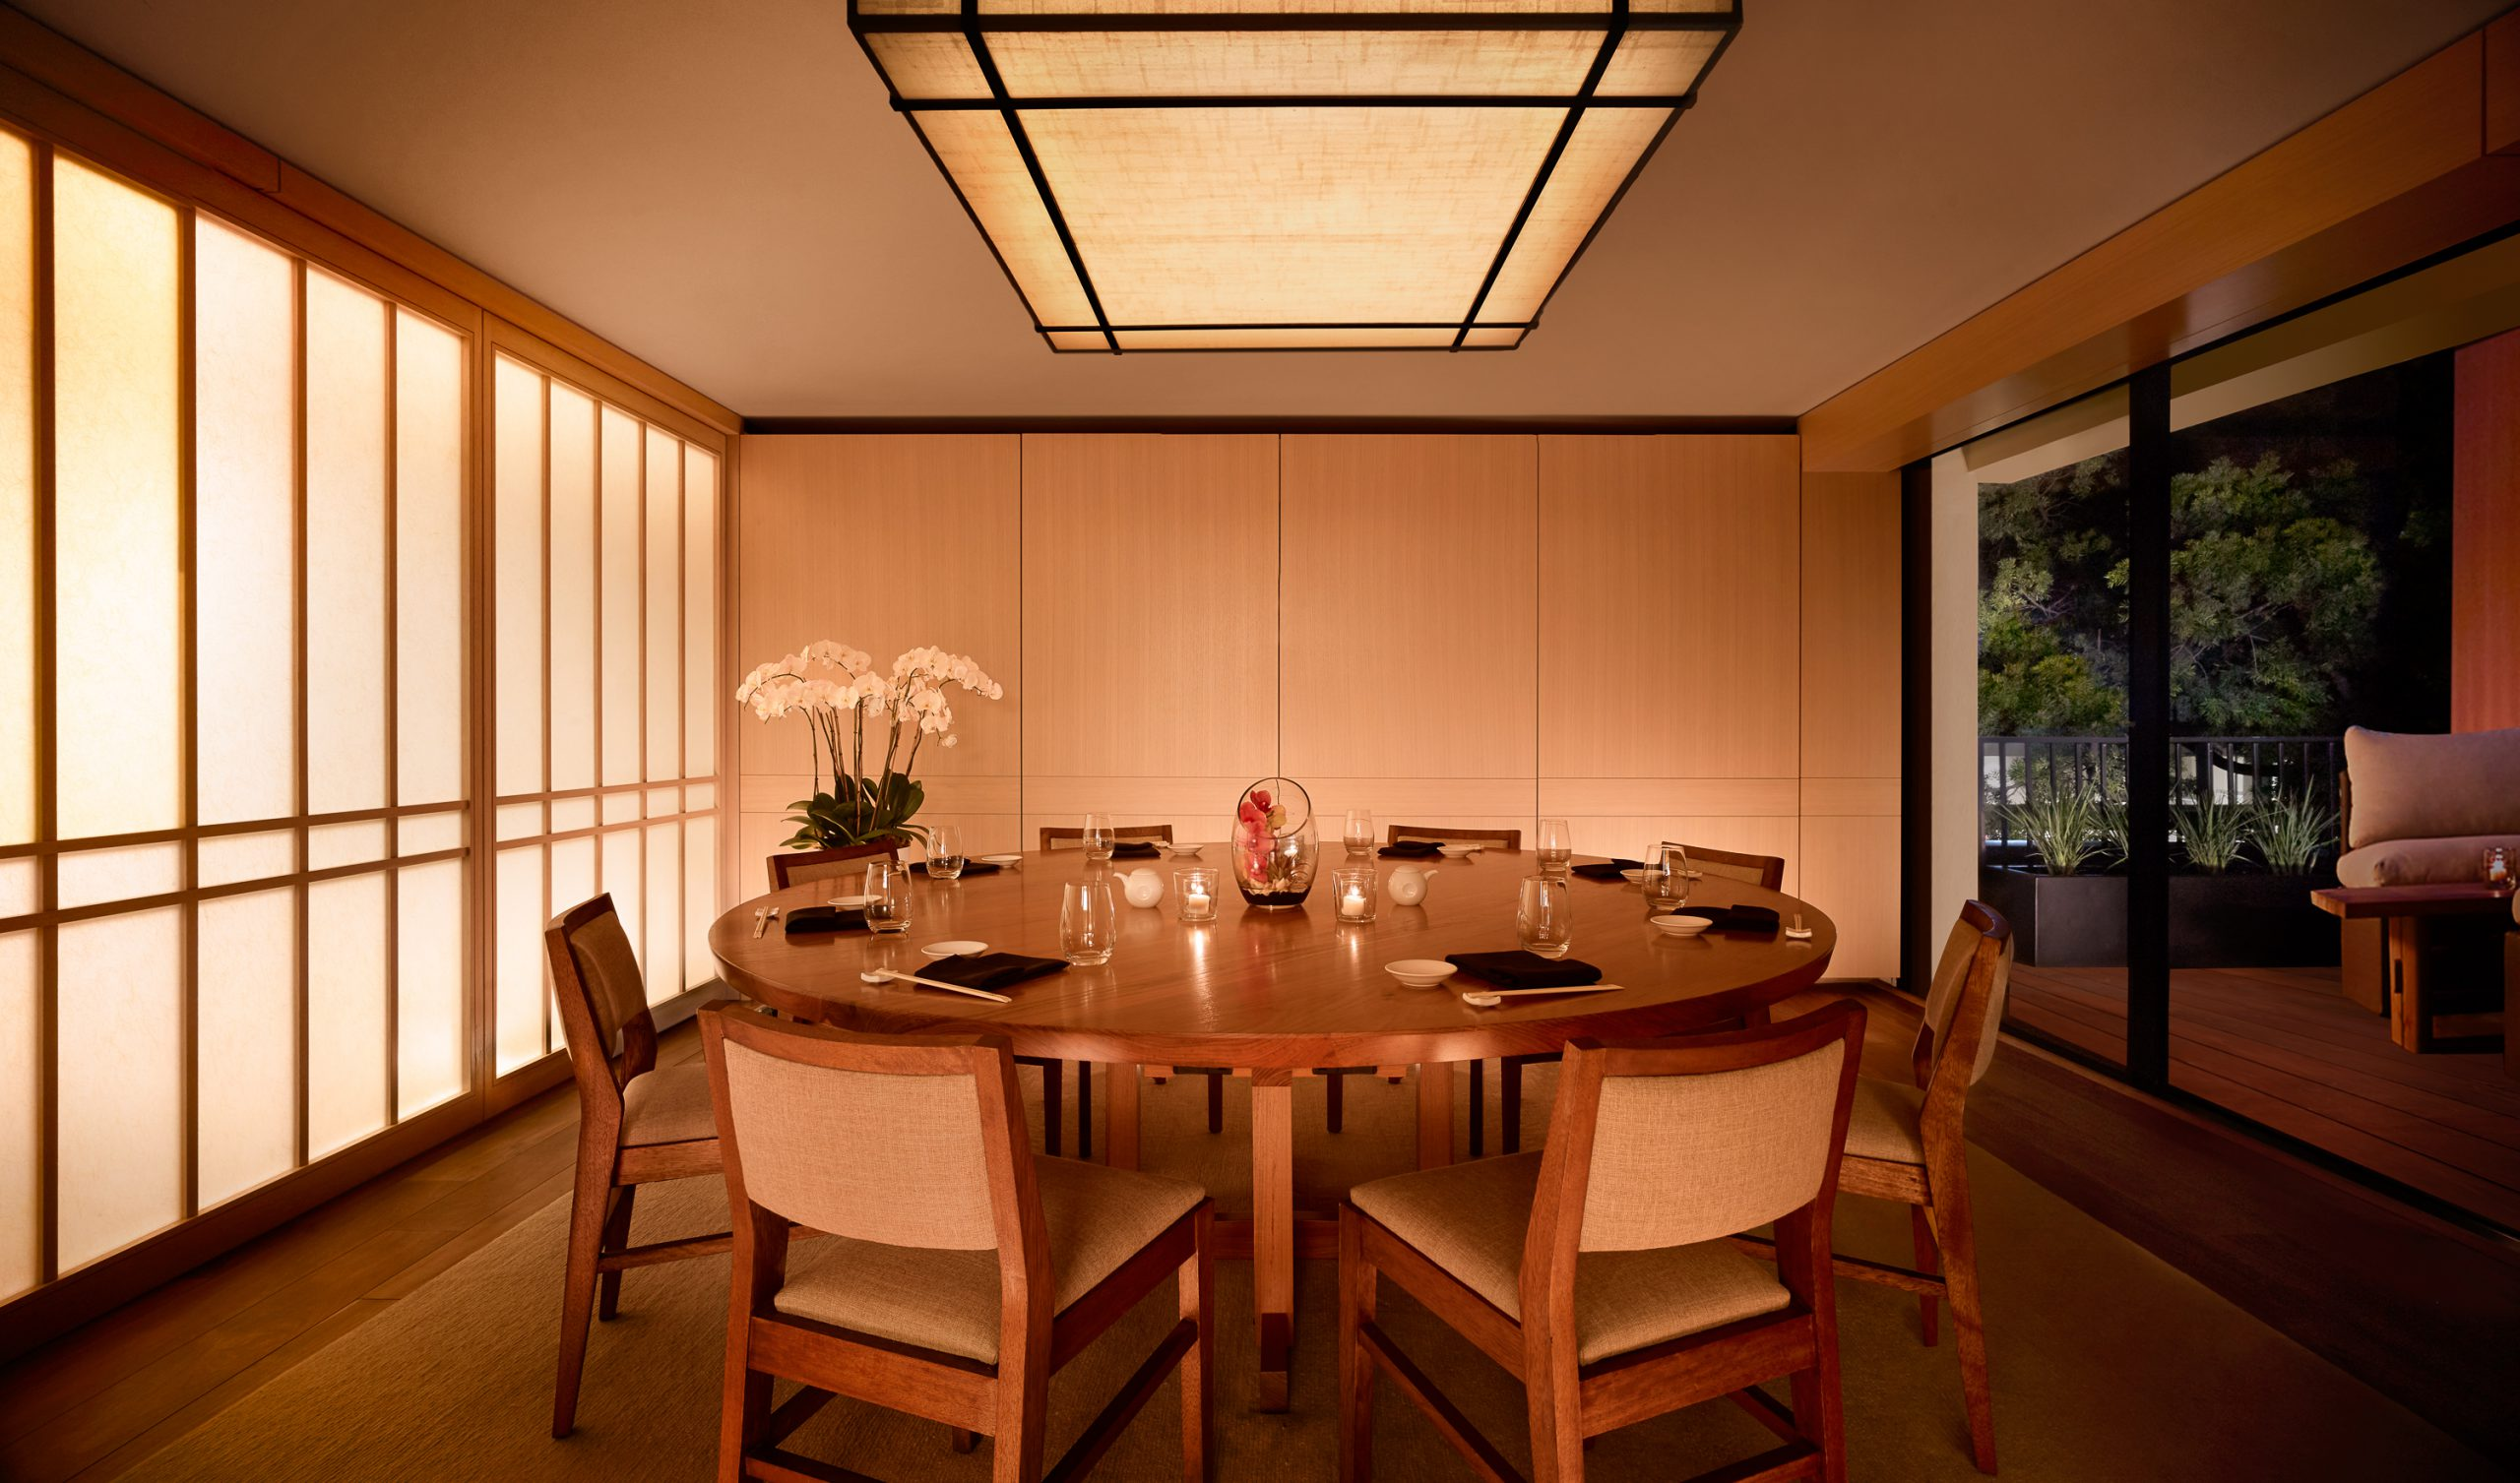 private dining room with round table and glass door to balcony